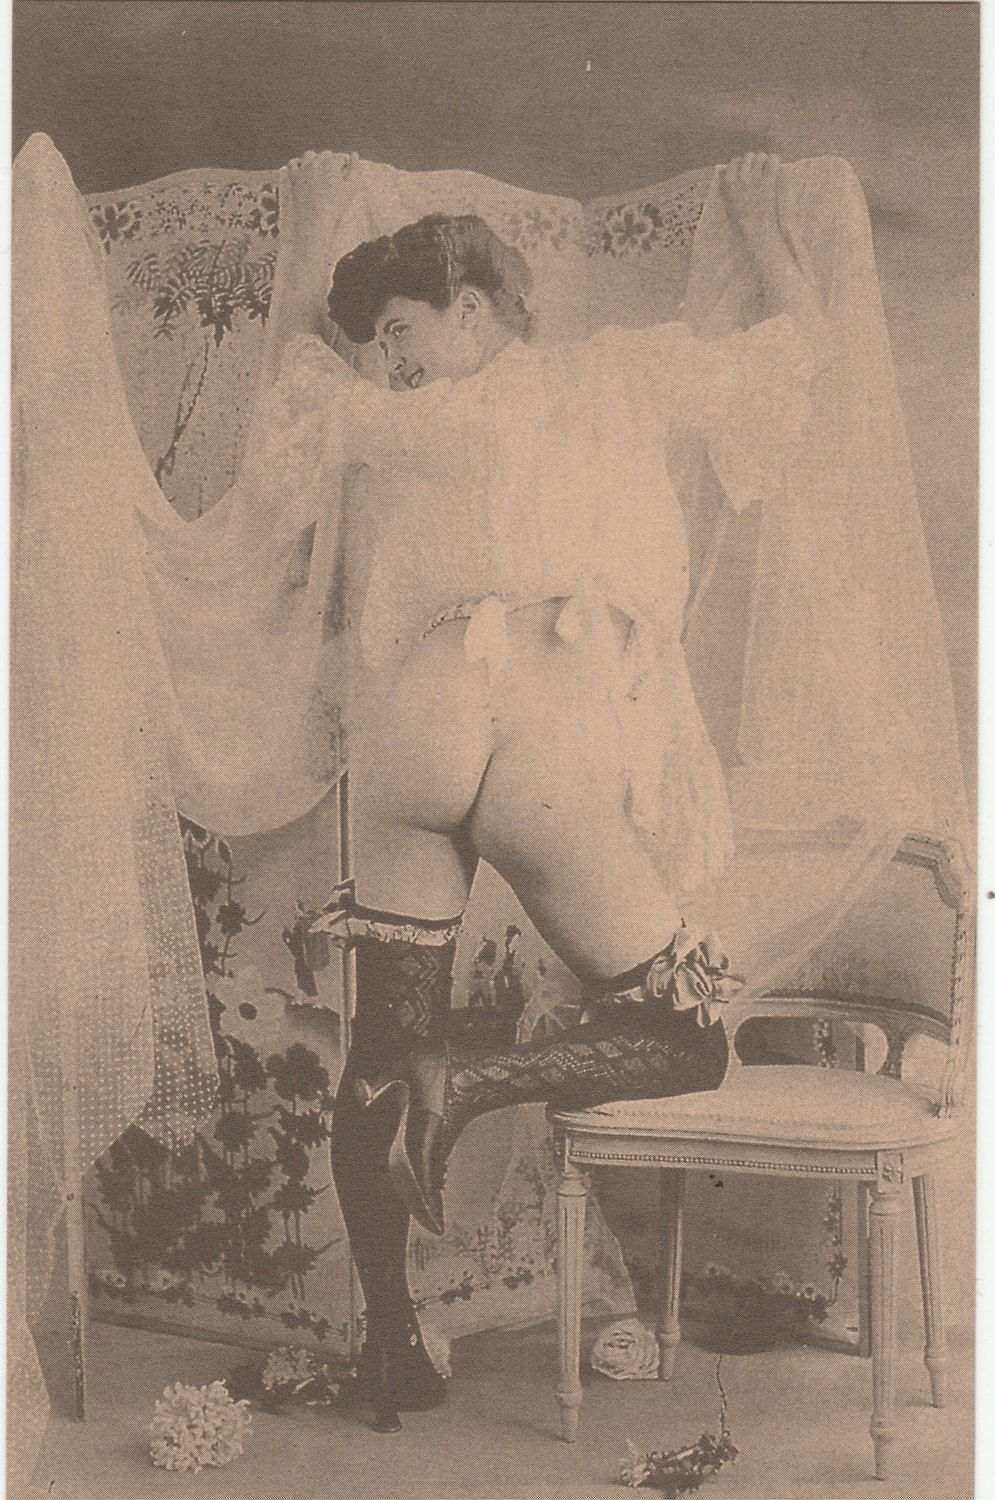 erotic postcard - vintage nude art photos reproduction photography